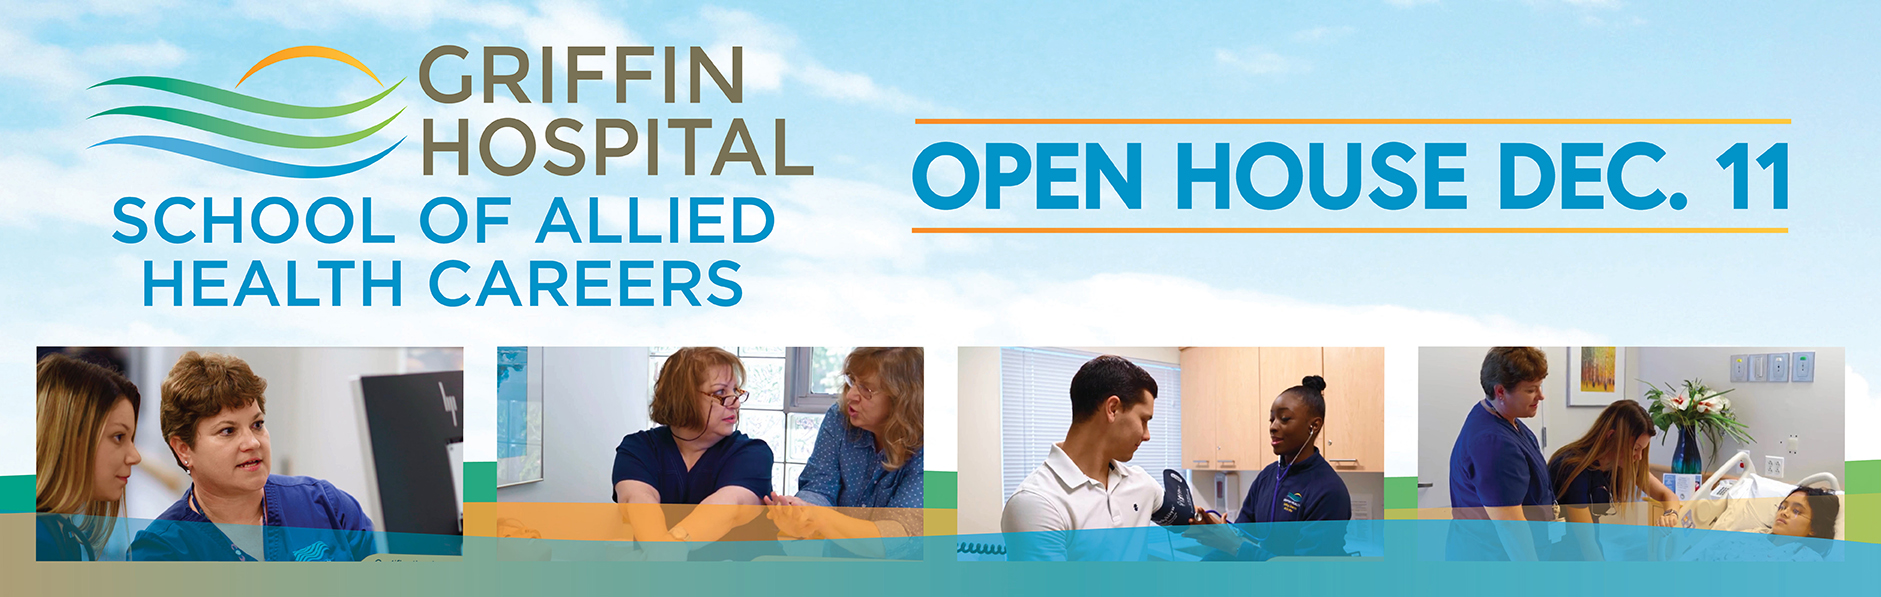 Healthcare Careers Open House